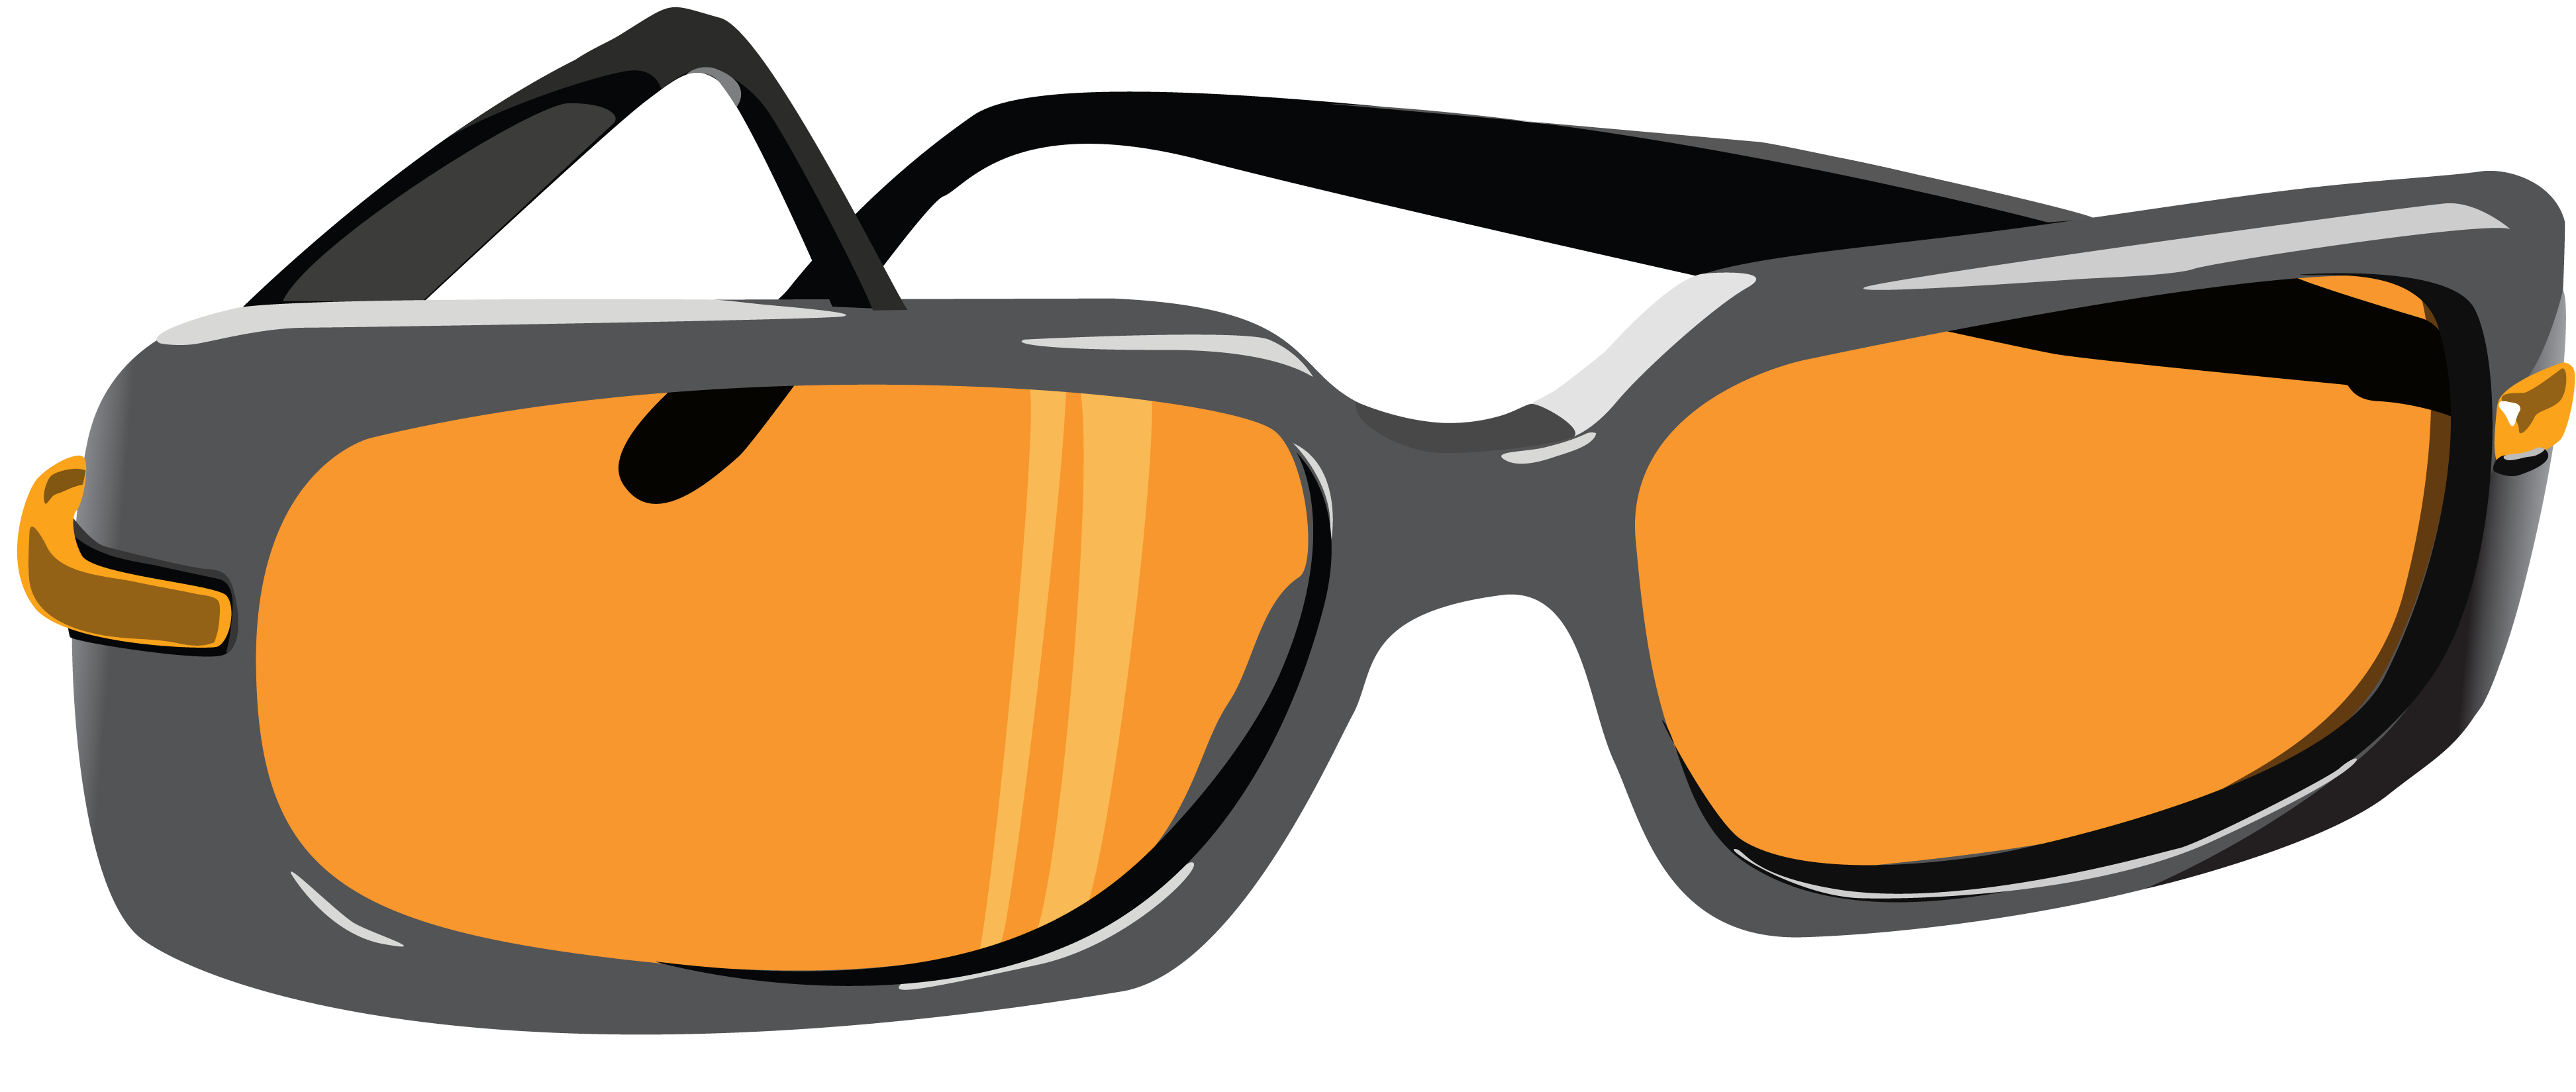 glasses PNG image